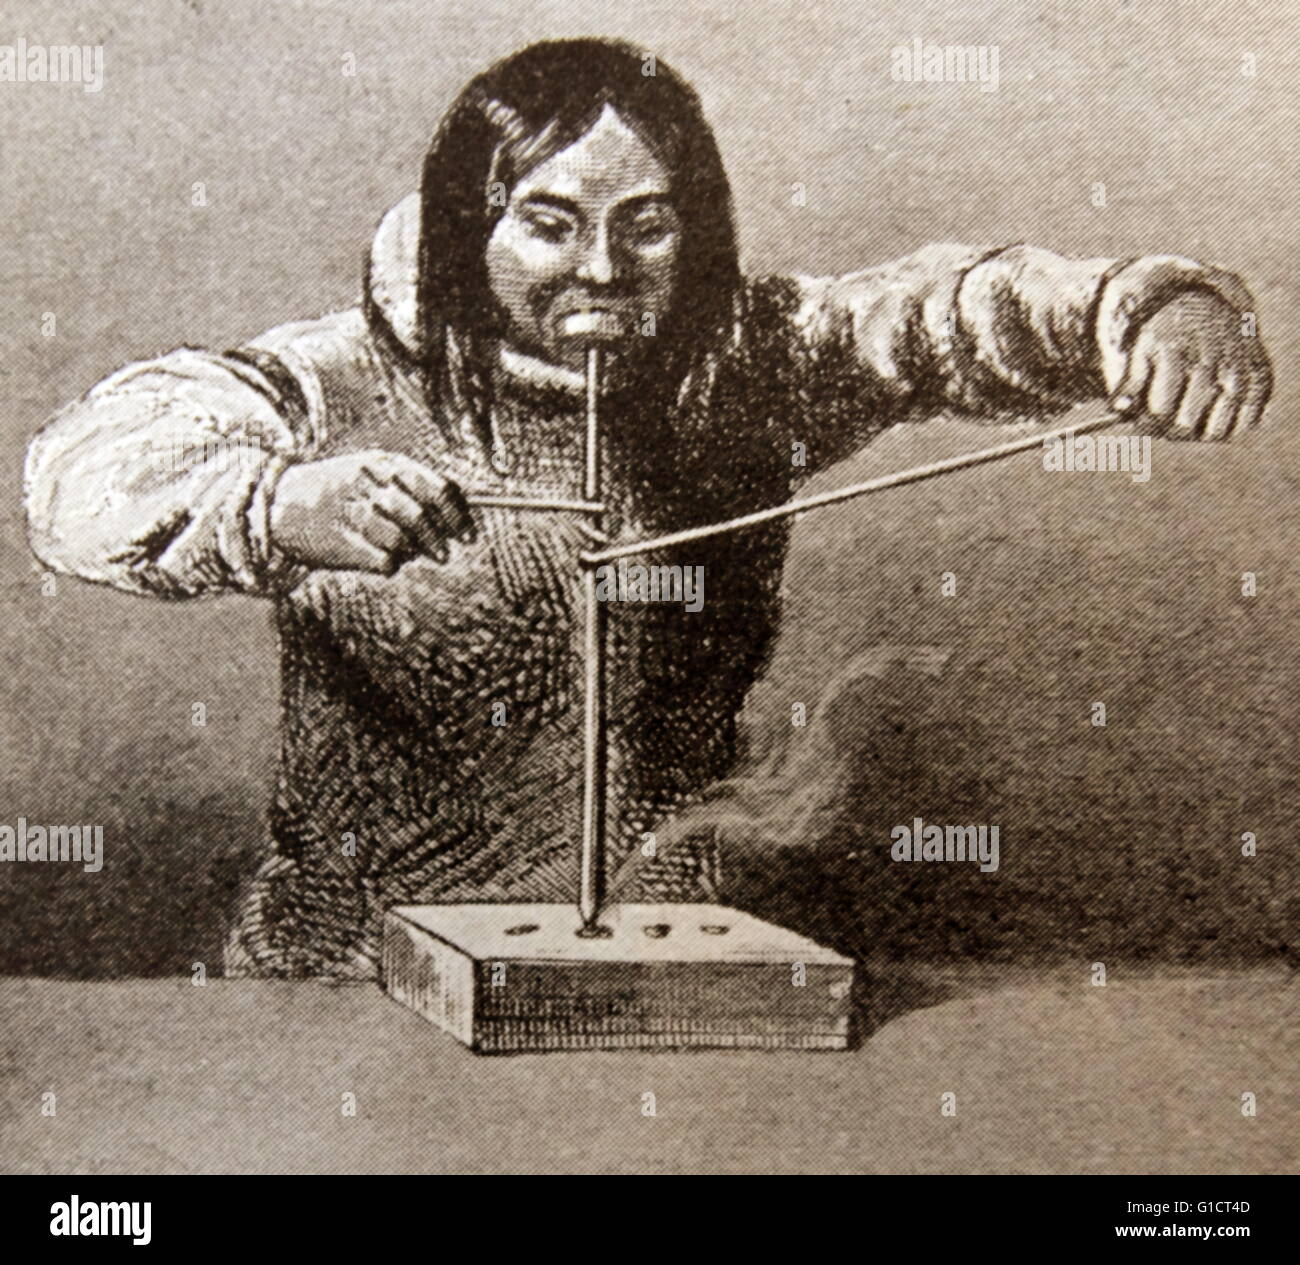 Engraving depicting an Inuit making fire by friction. Dated 19th Century - Stock Image